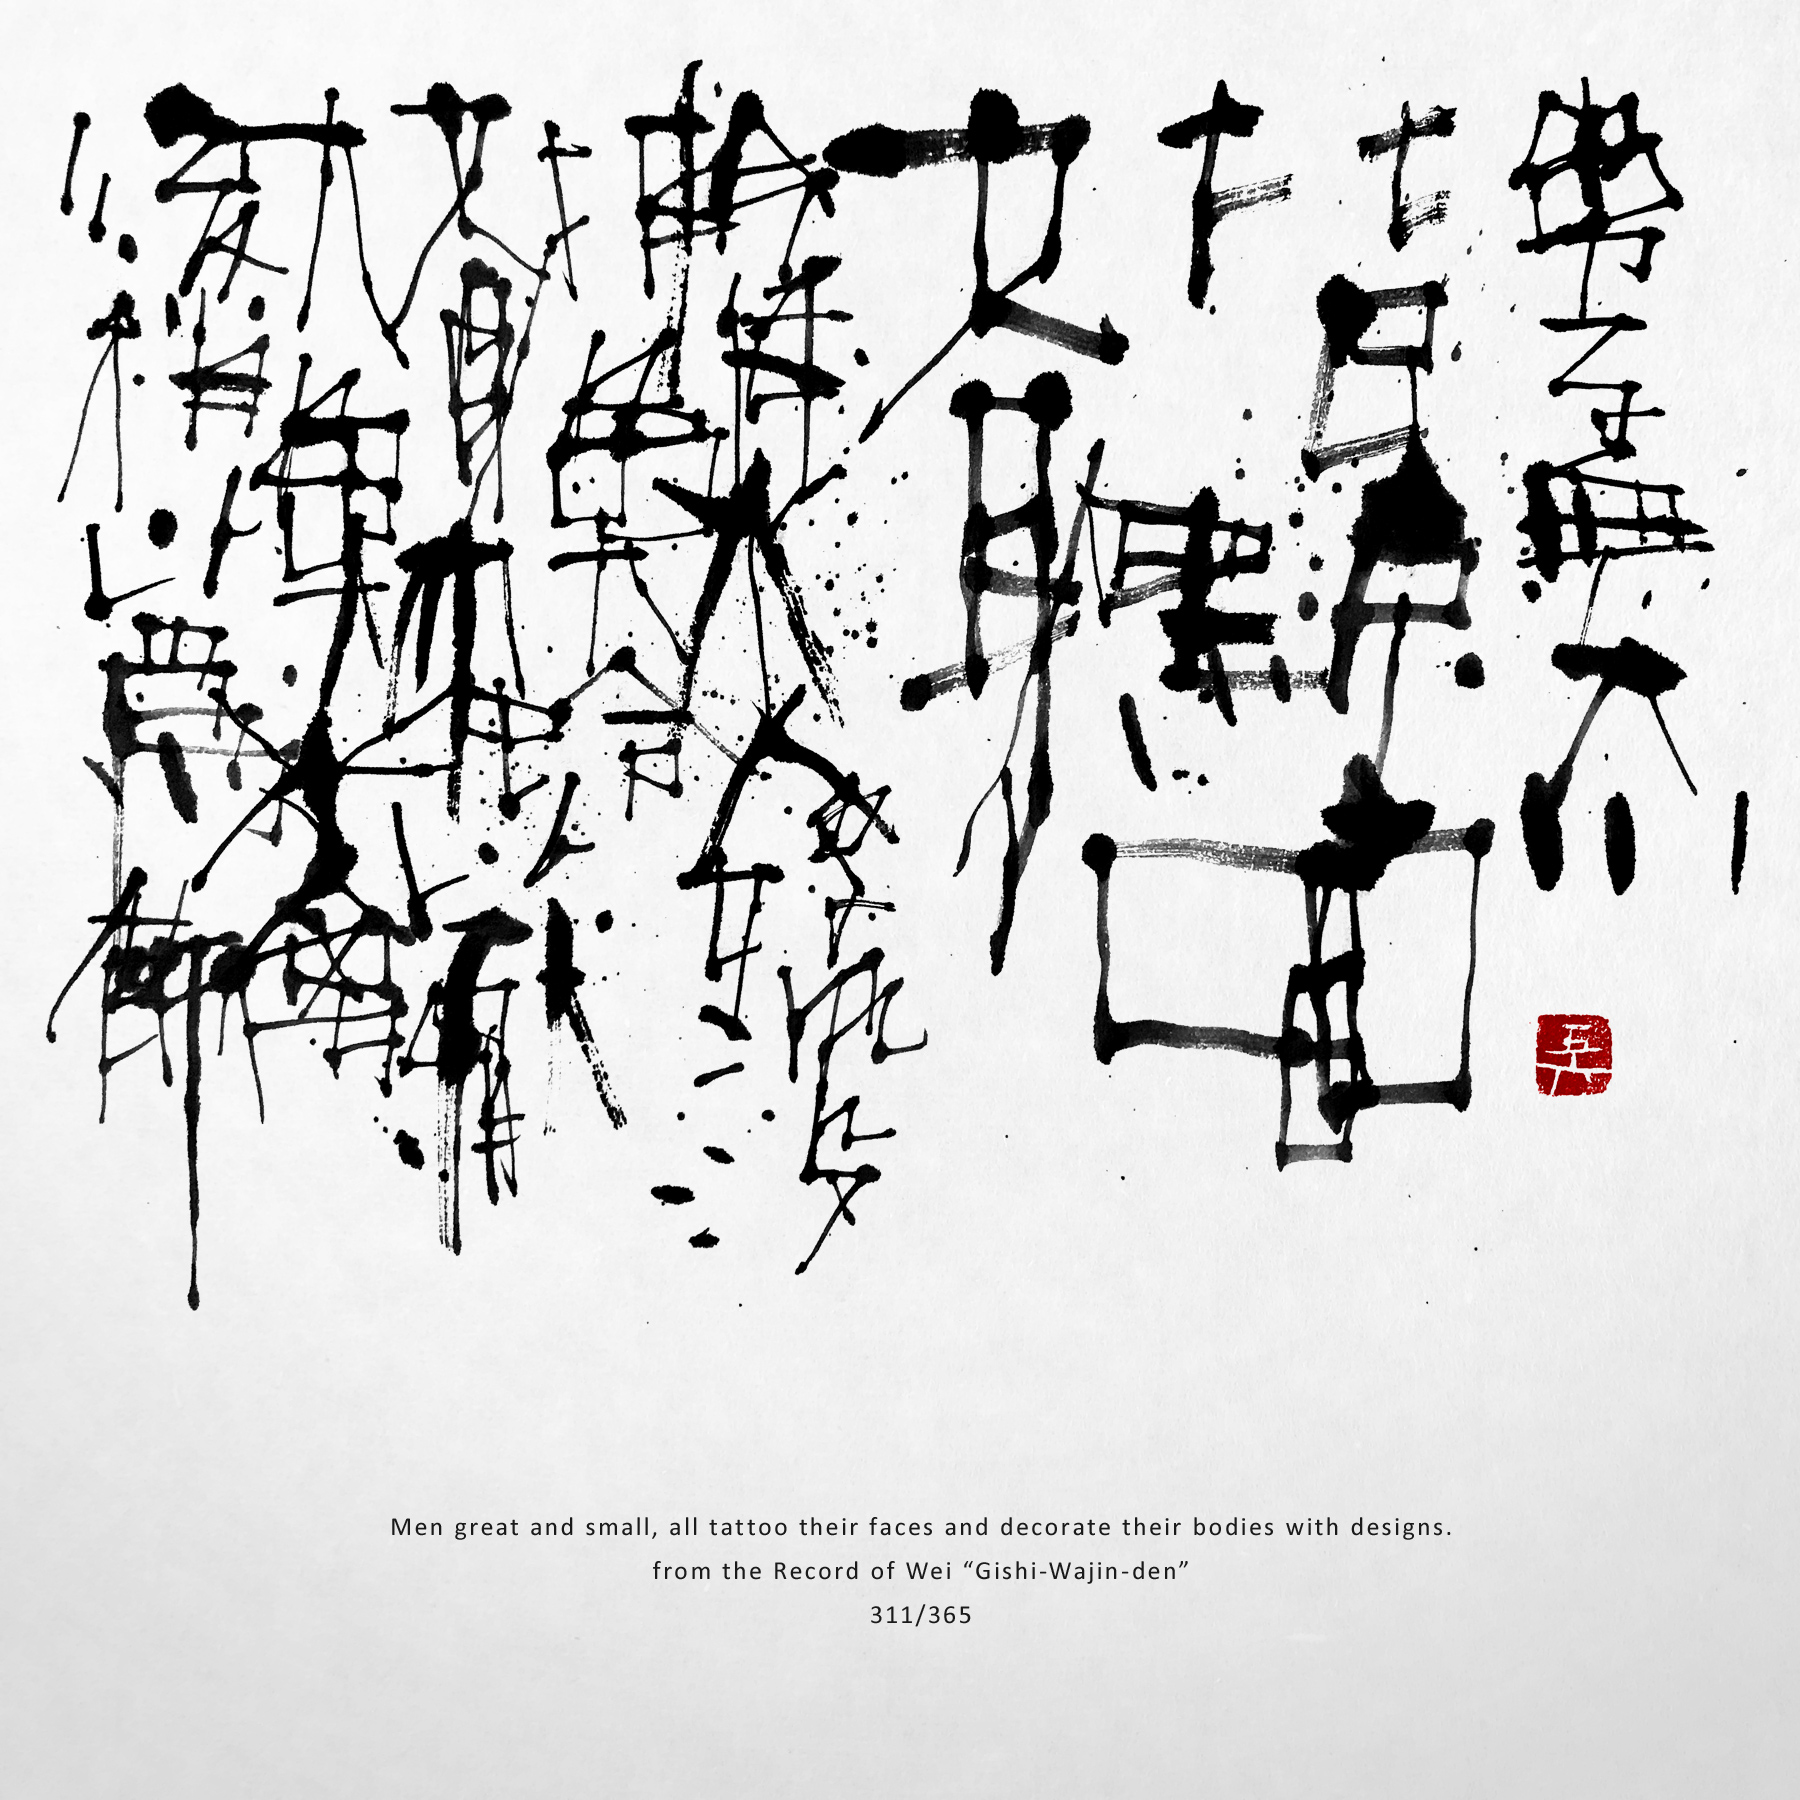 鯨面文身 | from the Records of Wei 魏志倭人伝より 書道作品 japaneseart japanese calligraphy 書家 田川悟郎 Goroh Tagawa